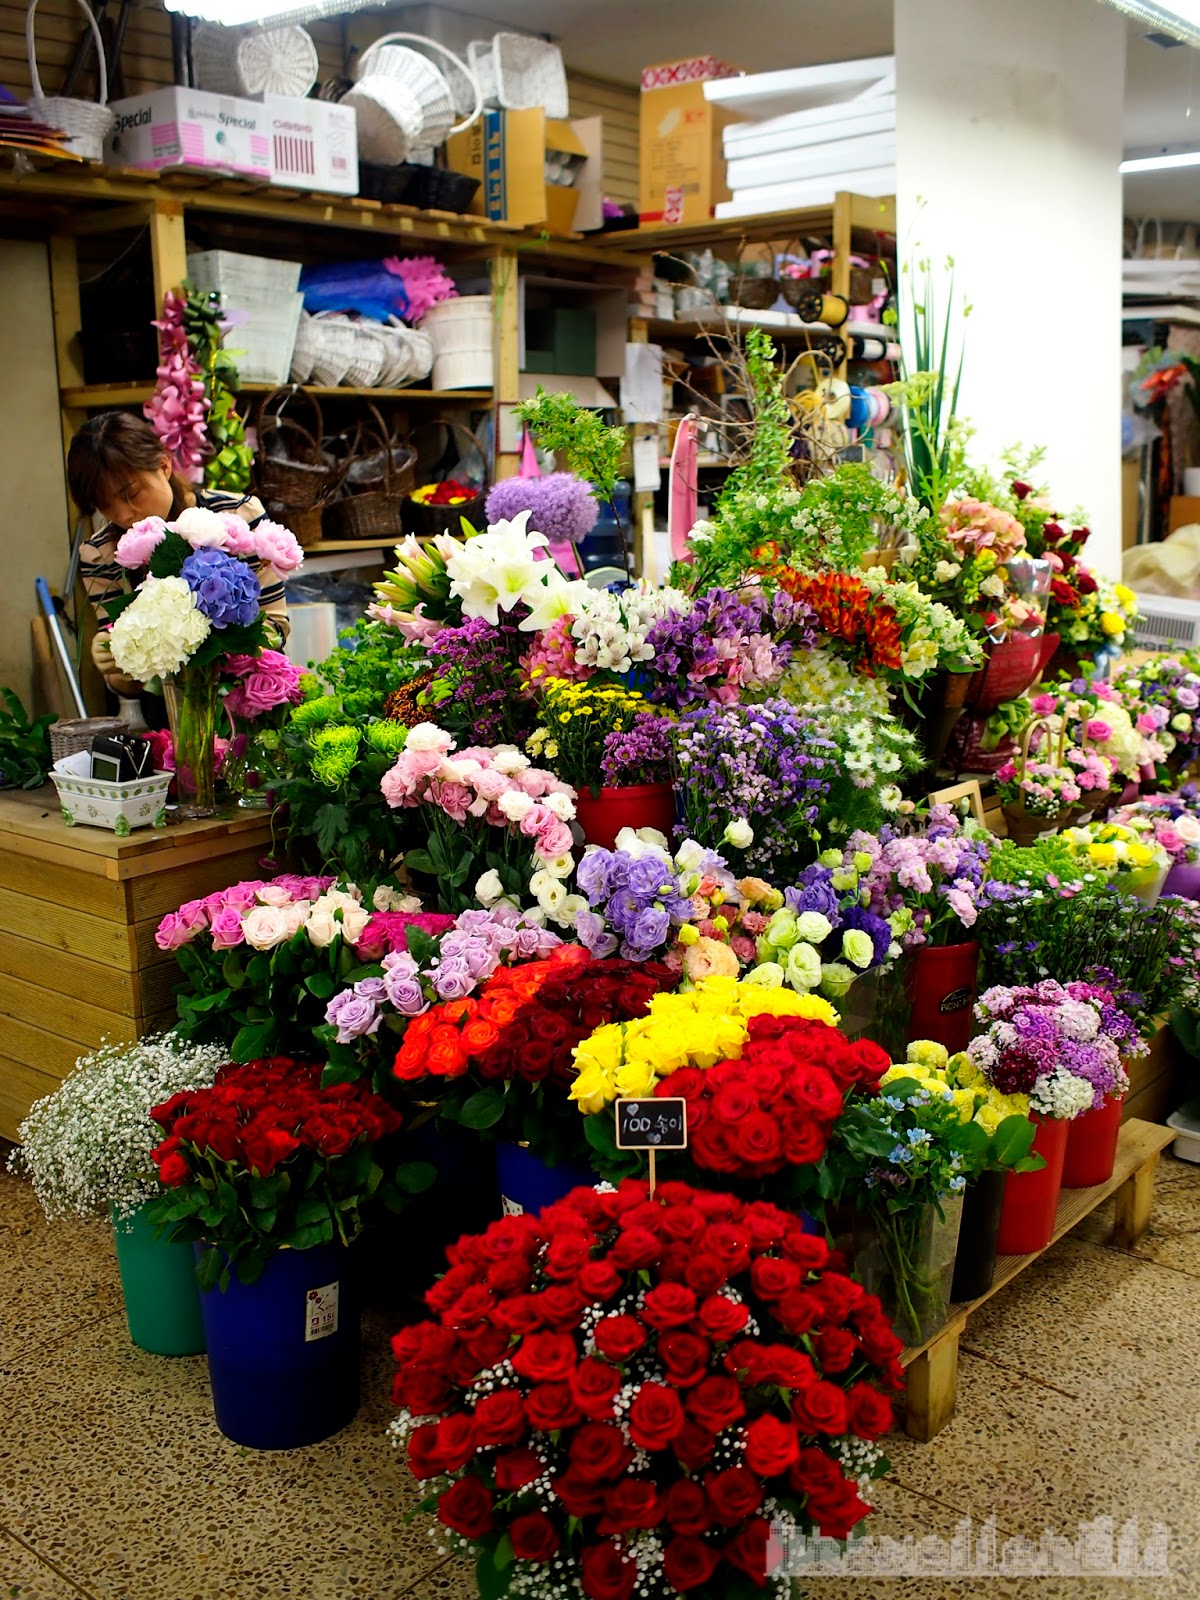 the basement market sells ready made bouquets or you can pick the